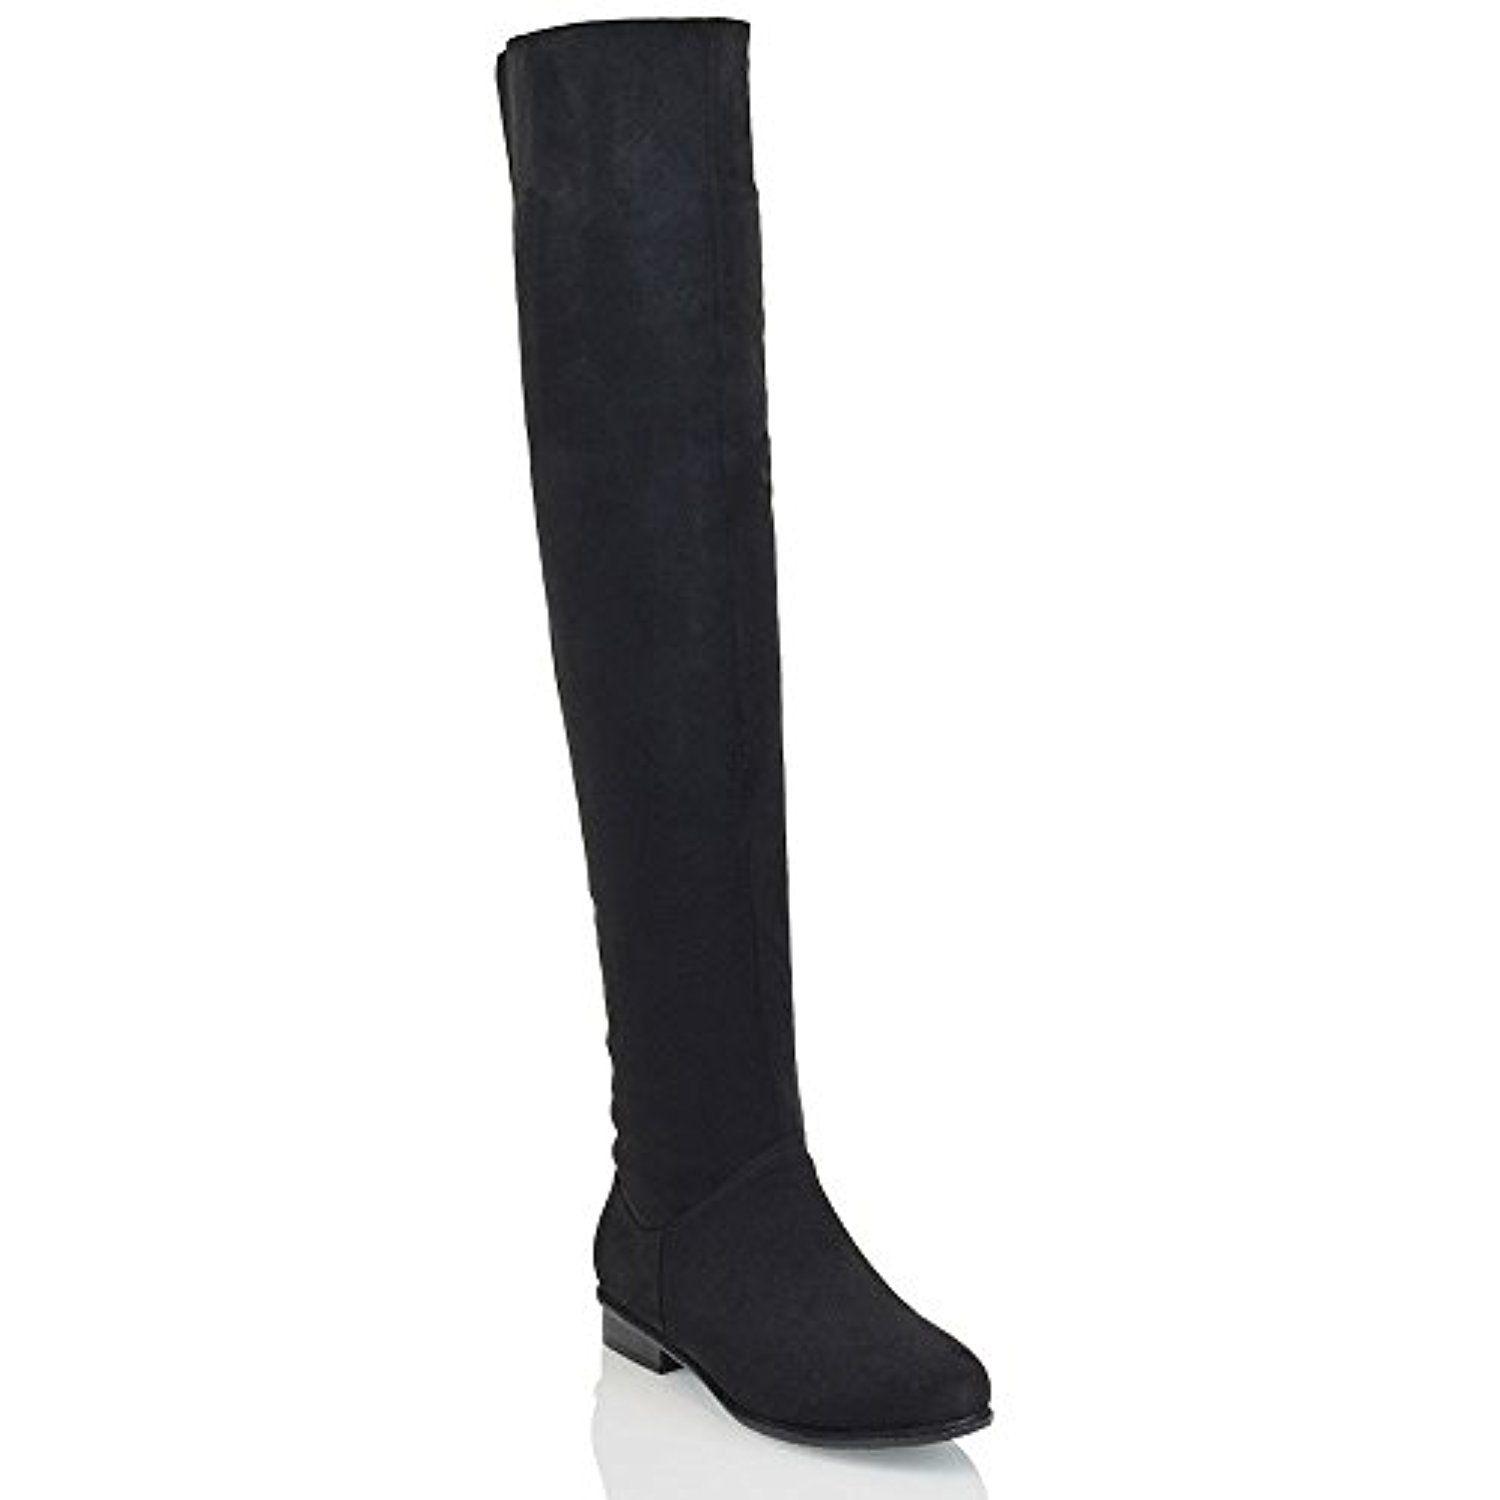 Women Over The Knee High Flat Ladies Long Faux Suede Thigh High Boots Shoes Size